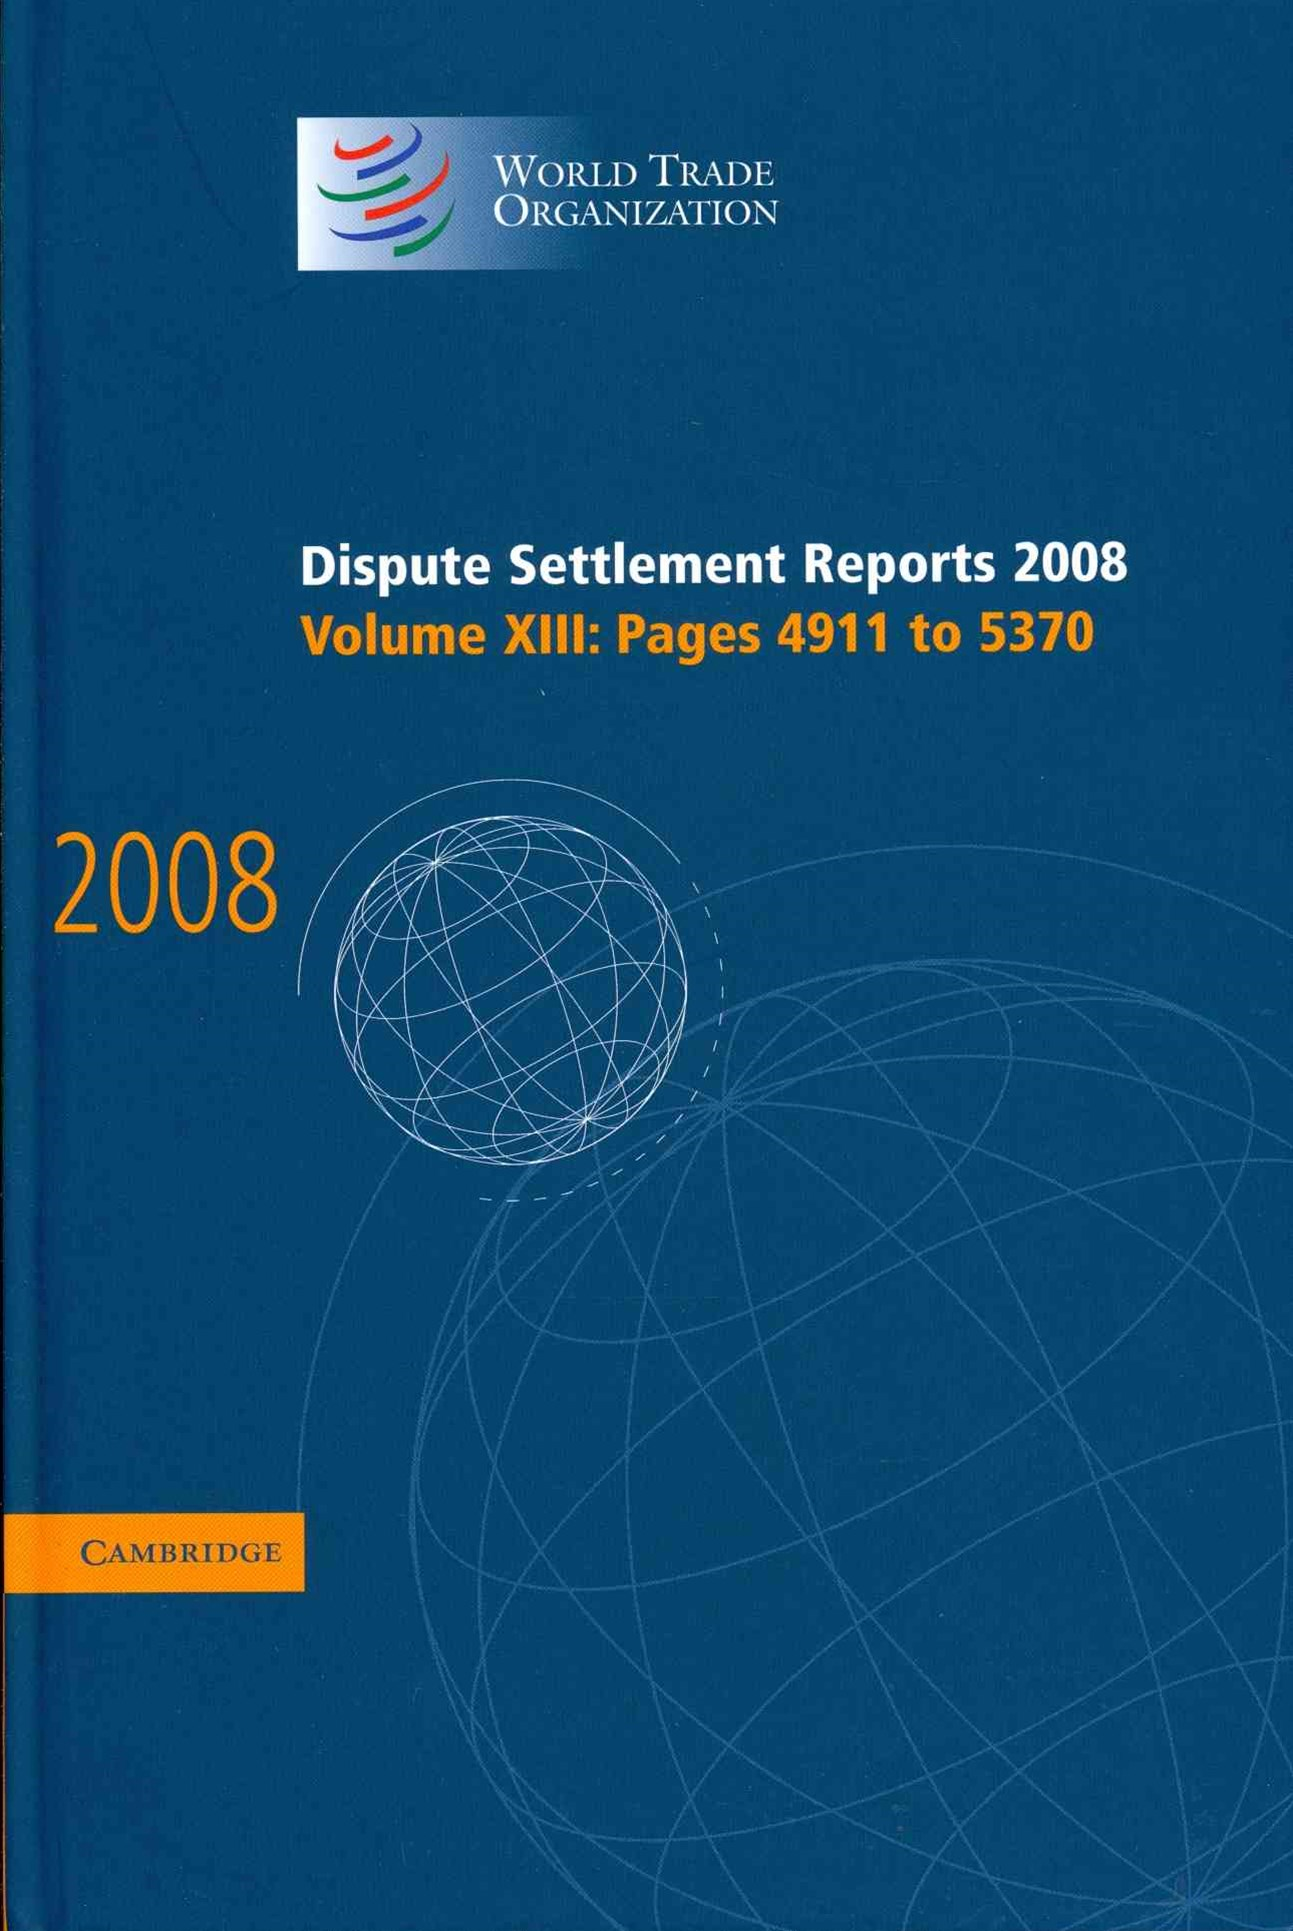 Dispute Settlement Reports 2008: Volume 13, Pages 4911-5370